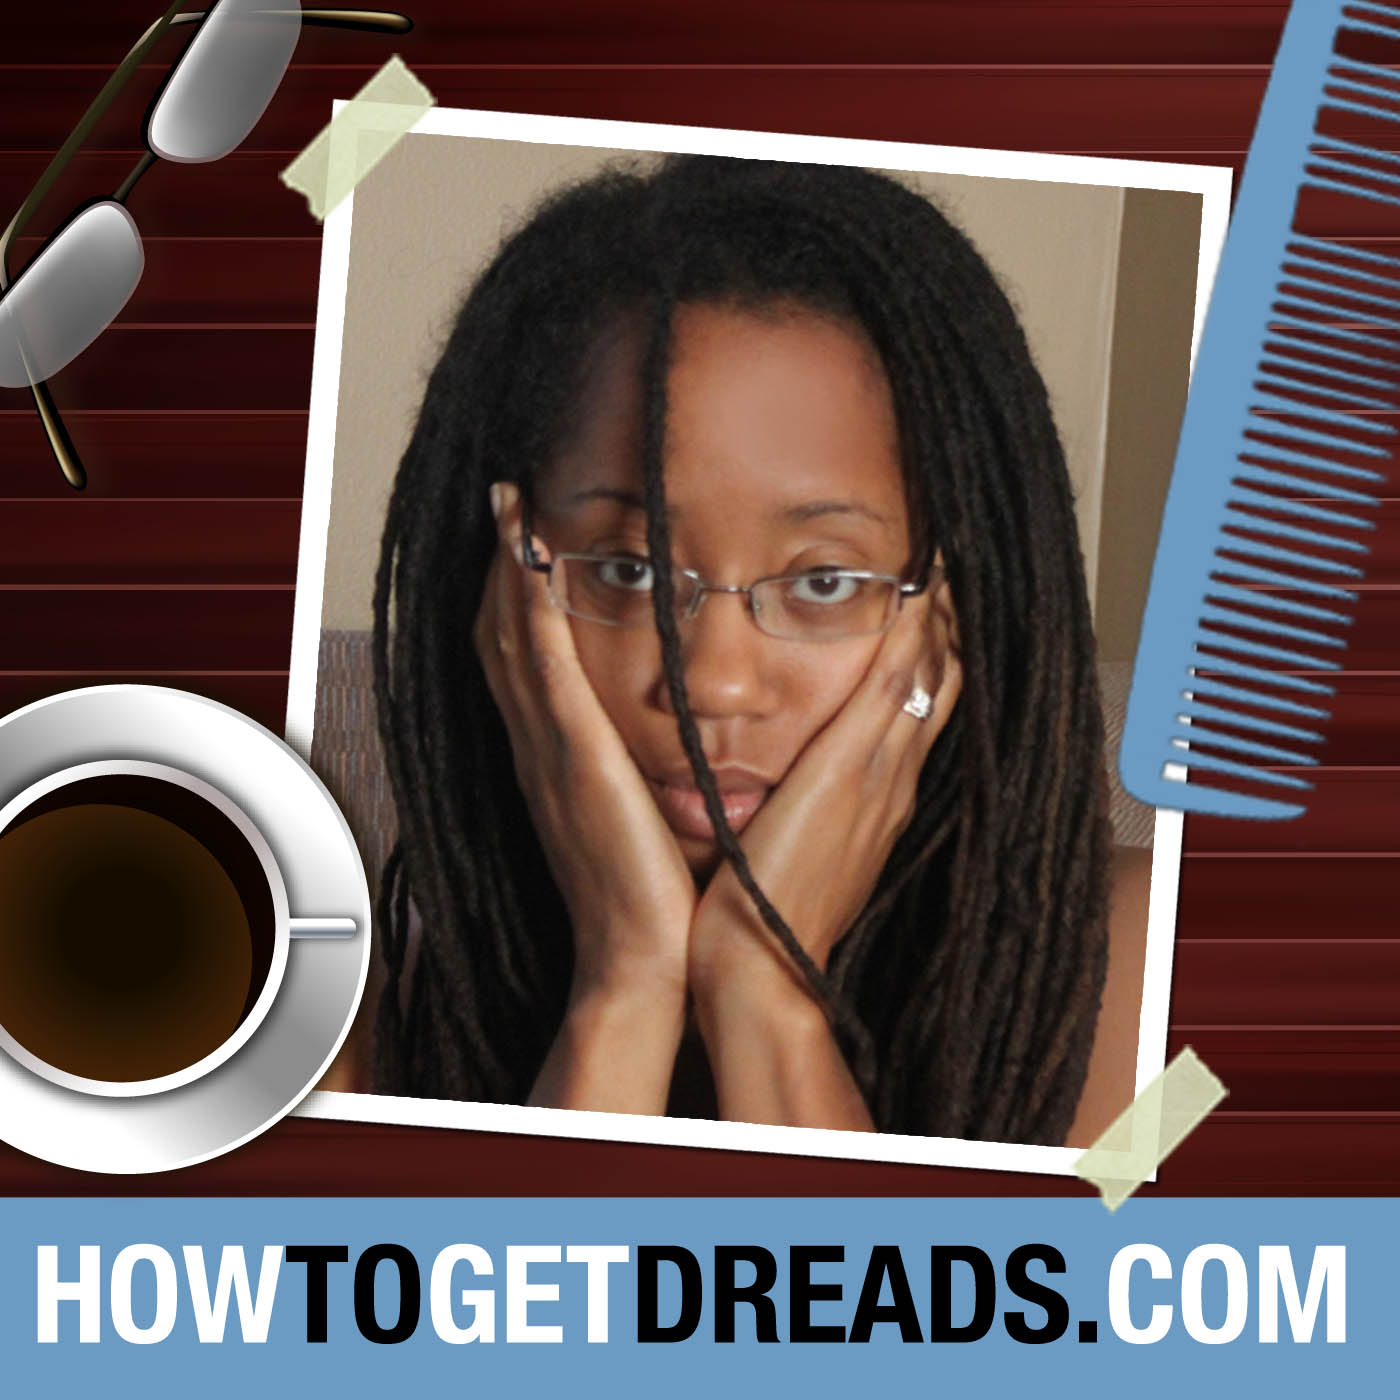 How To Get Dreads (HowToGetDreads.com) Podcast